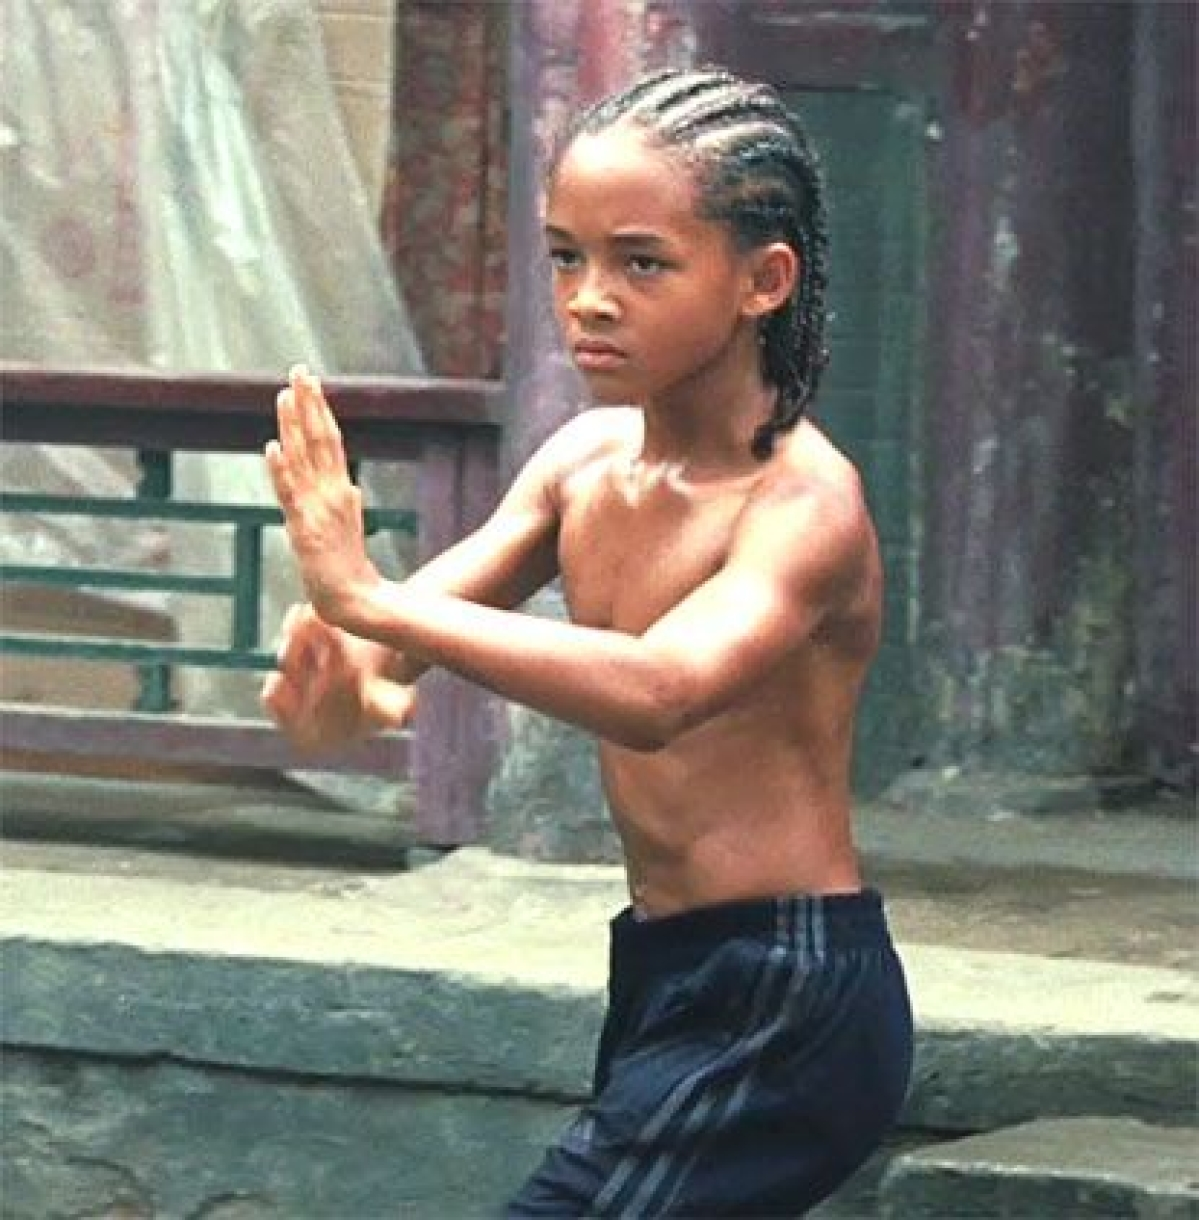 Masaba Gupta shares childhood pics in natural hair, netizens ask if she was in Jaden Smith's 'Karate Kid'